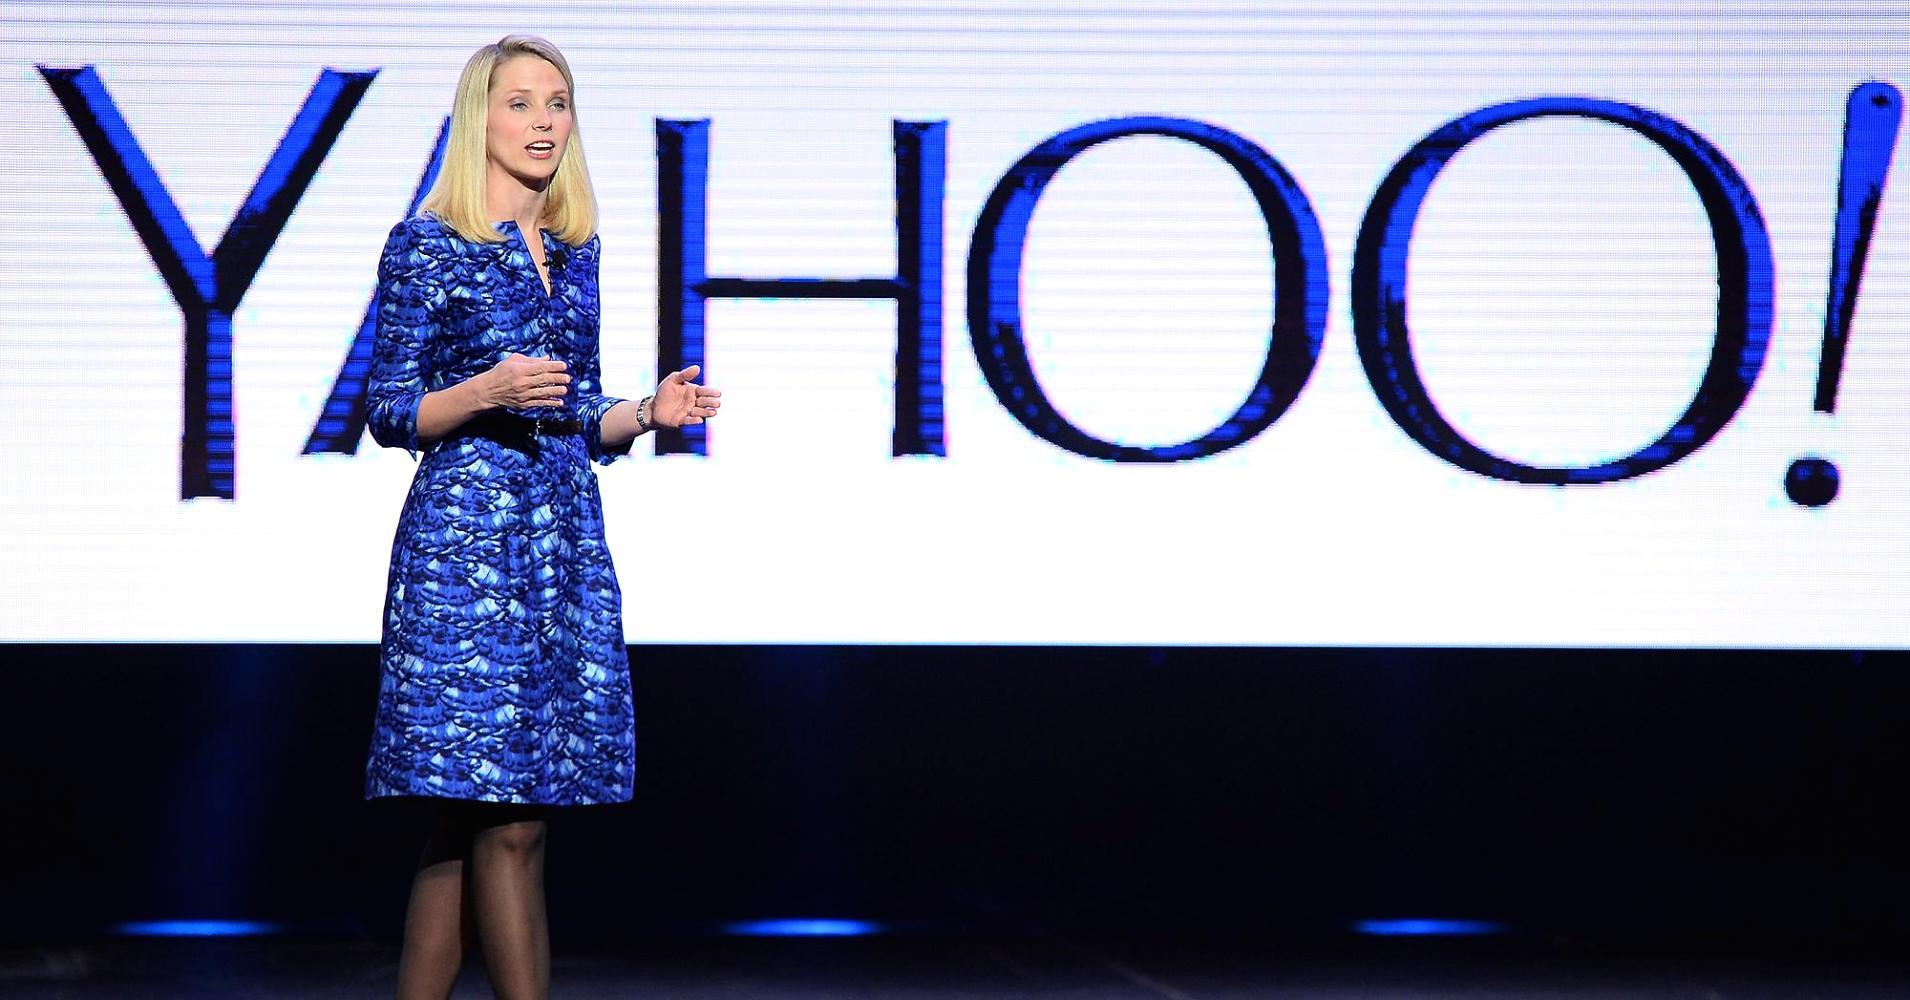 Verizon is taking a page from Apple's playbook with Yahoo deal